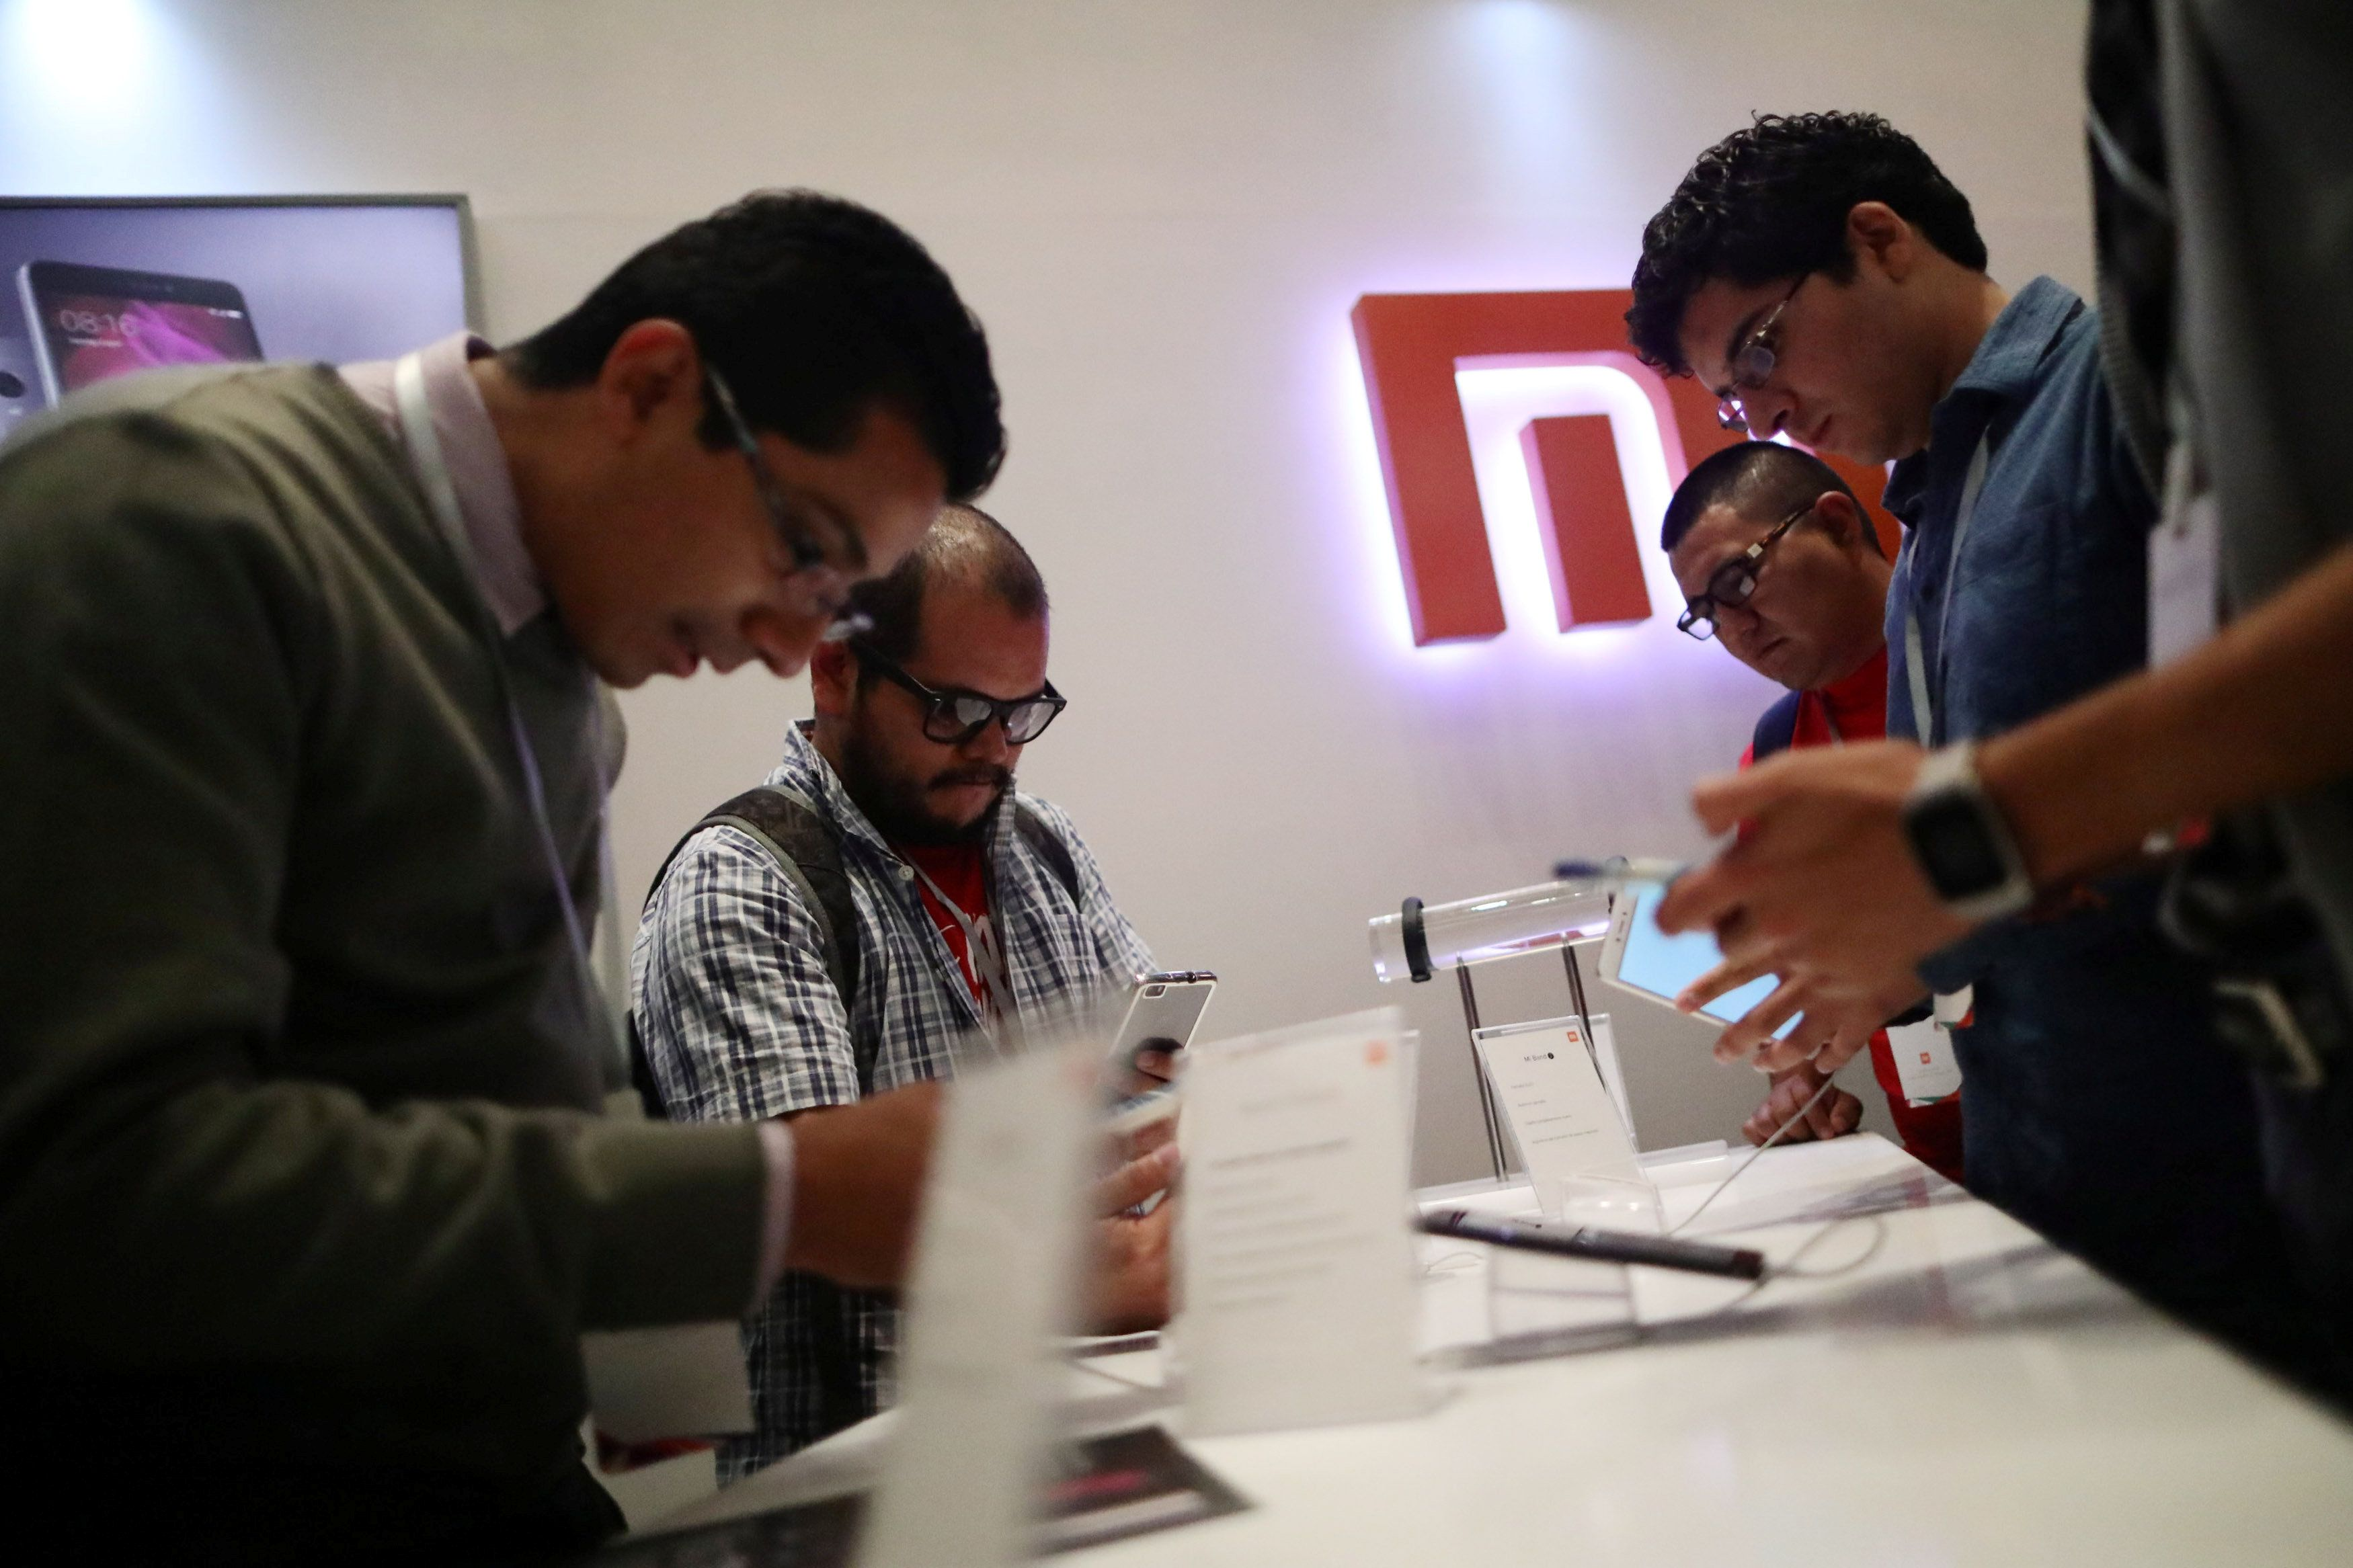 Customers gather during a presentation of the China's mobile company Xiaomi to celebrate the entry of the company into the Mexican market, in Mexico City, Mexico, May 9, 2017. REUTERS/Edgard Garrido